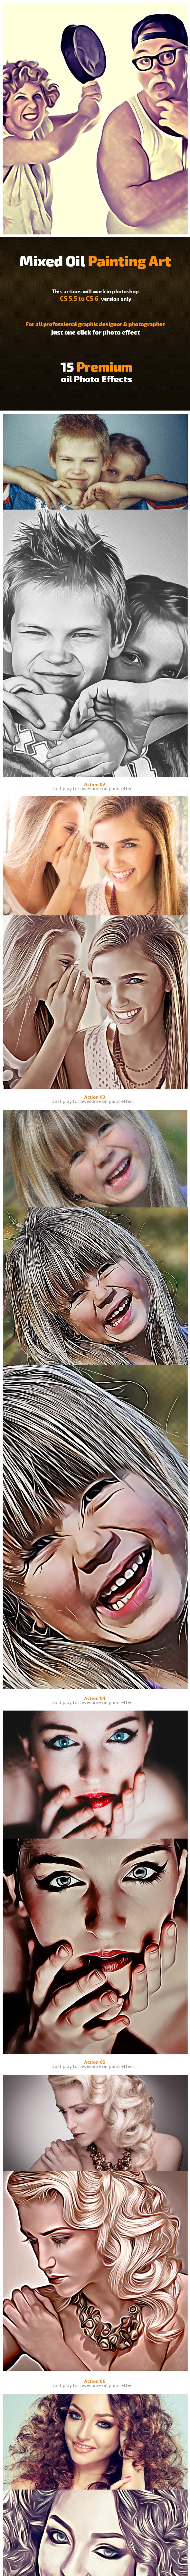 Mixed Oil Painting Art - Photo Effects Actions